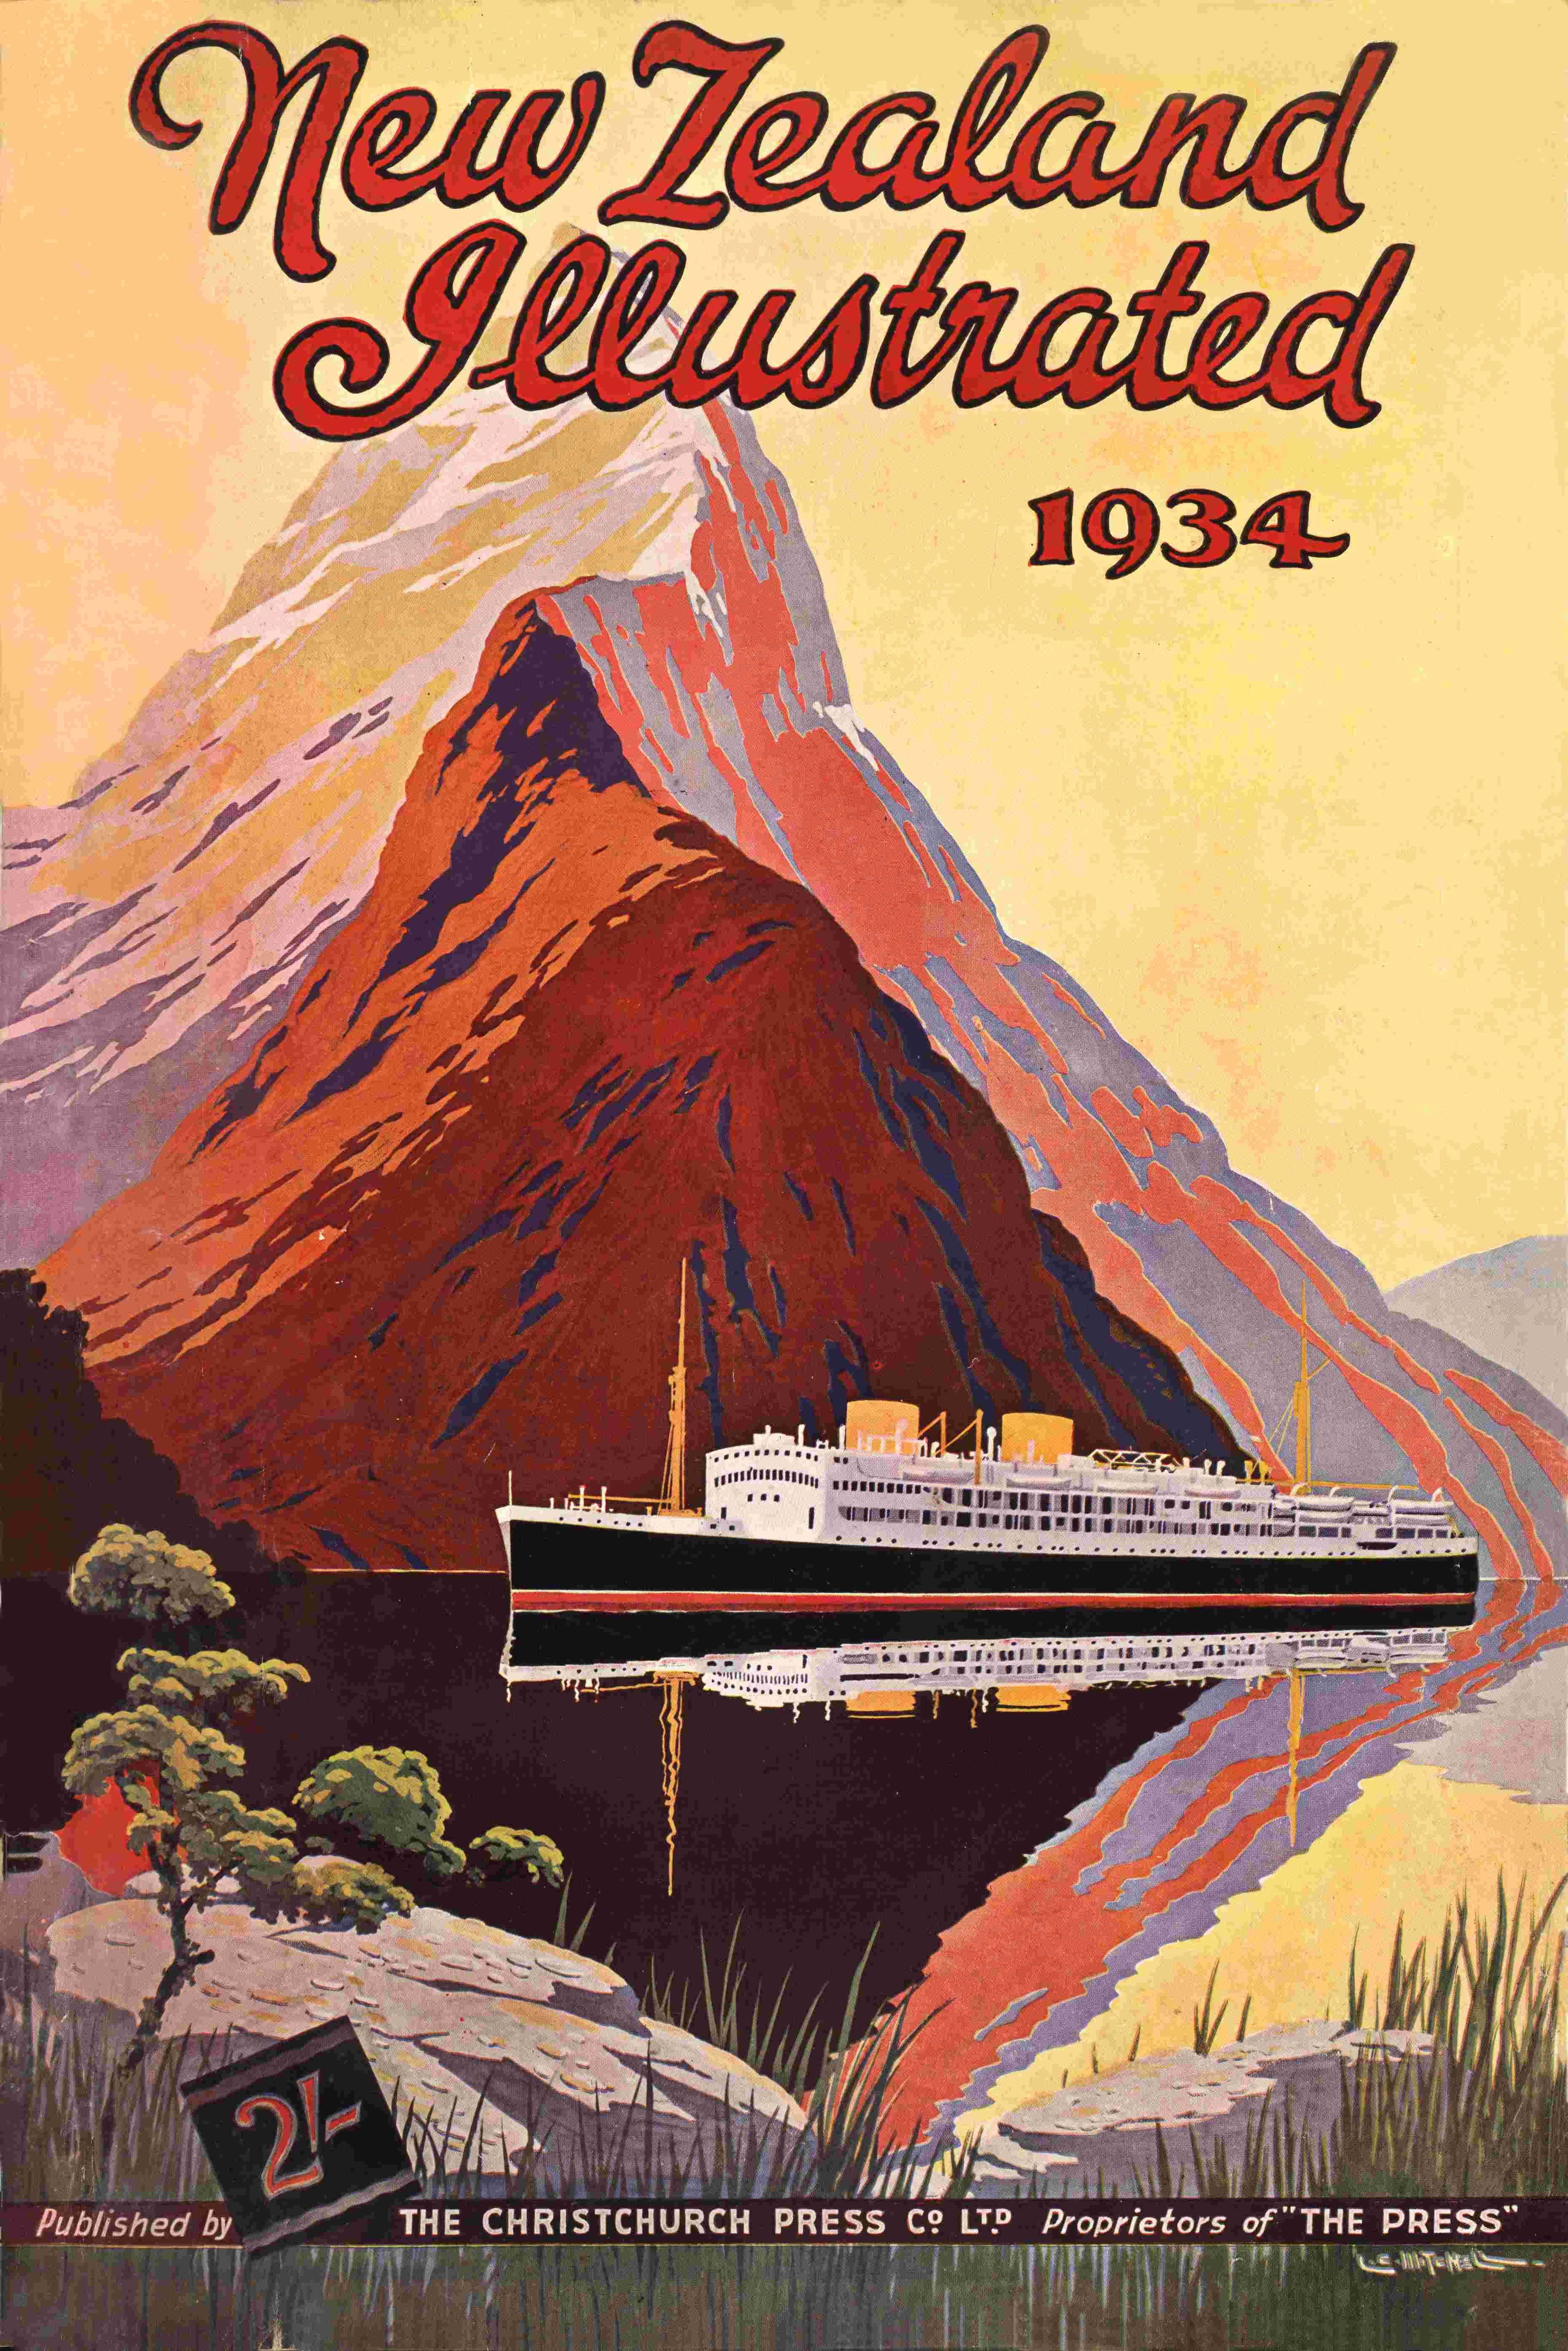 1920s Visit Montana Northern Pacific Railroad Vintage Style Travel Poster  20x28